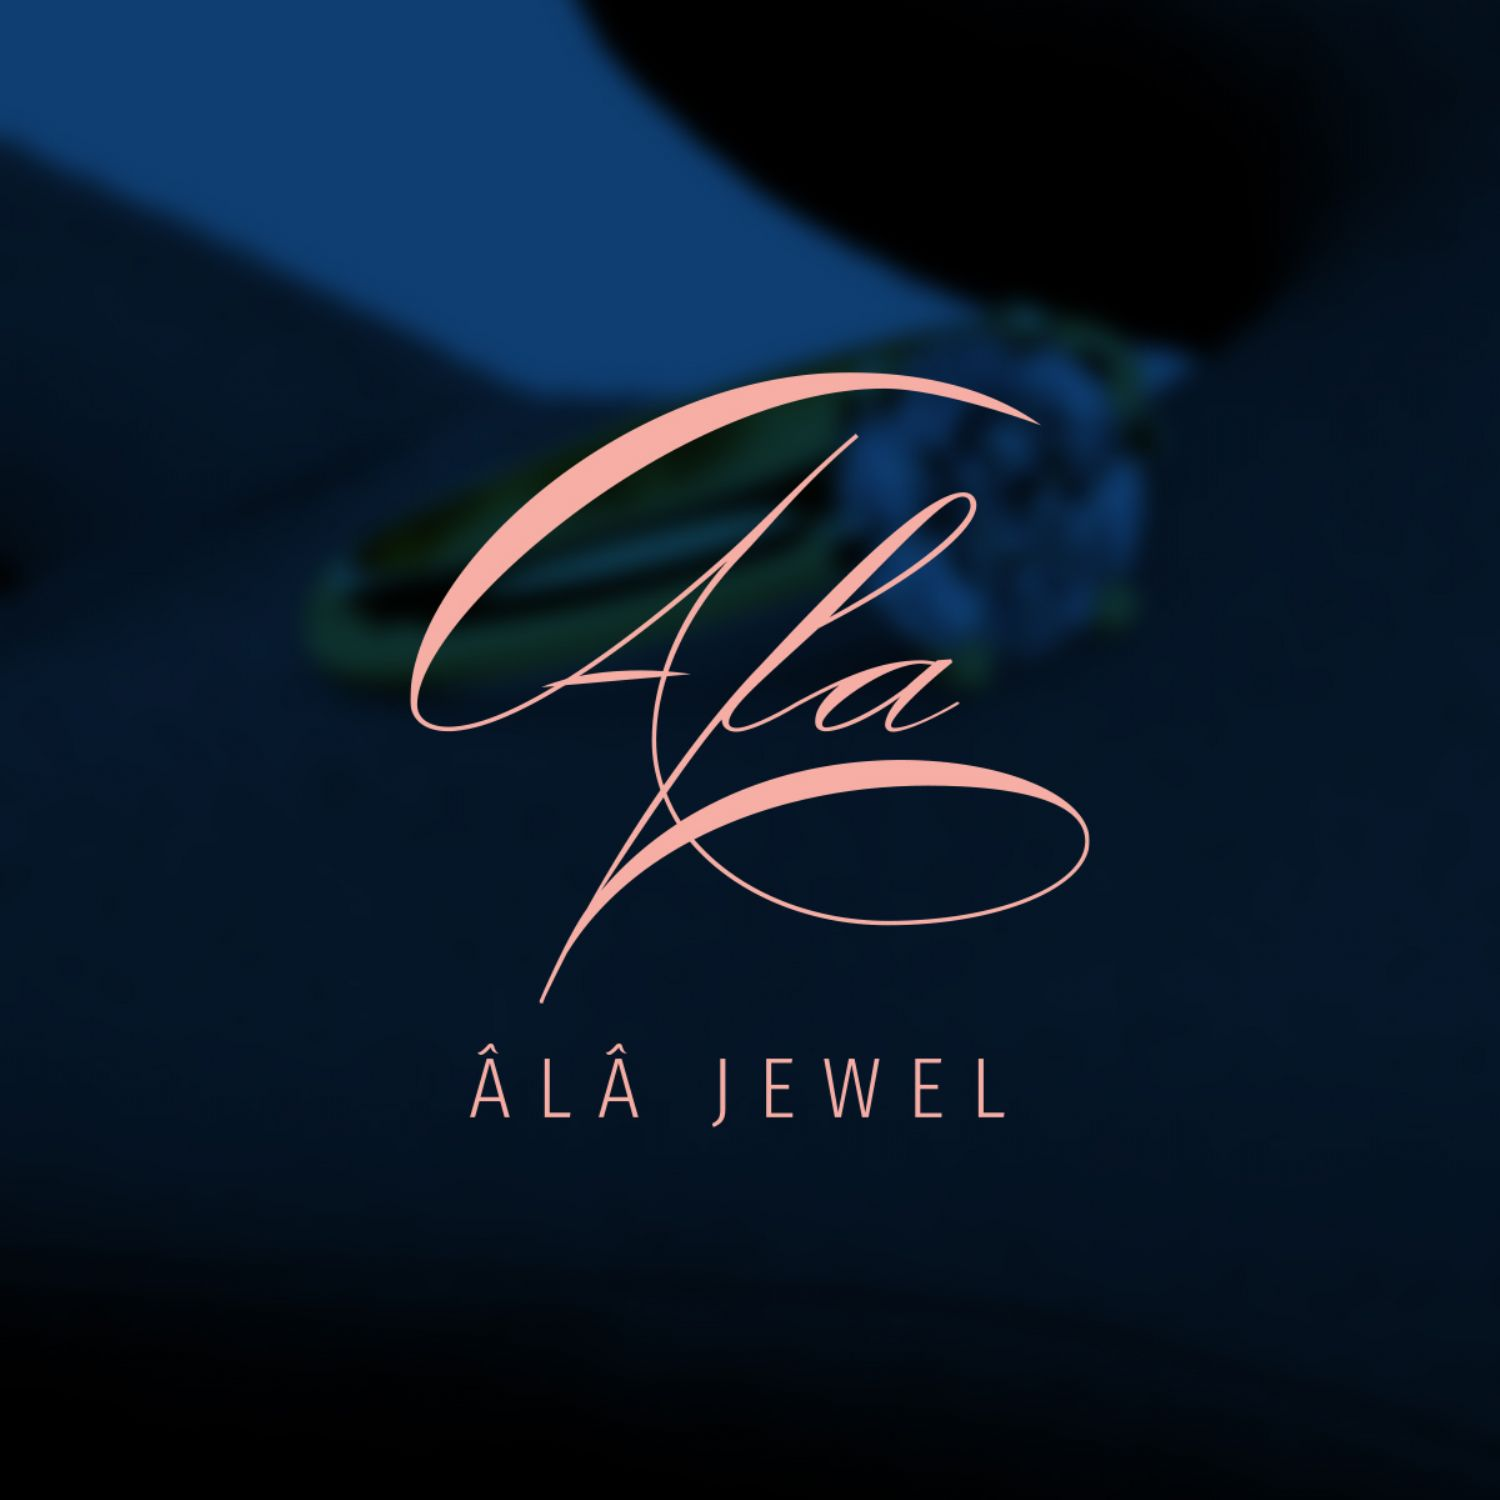 Ala Jewel